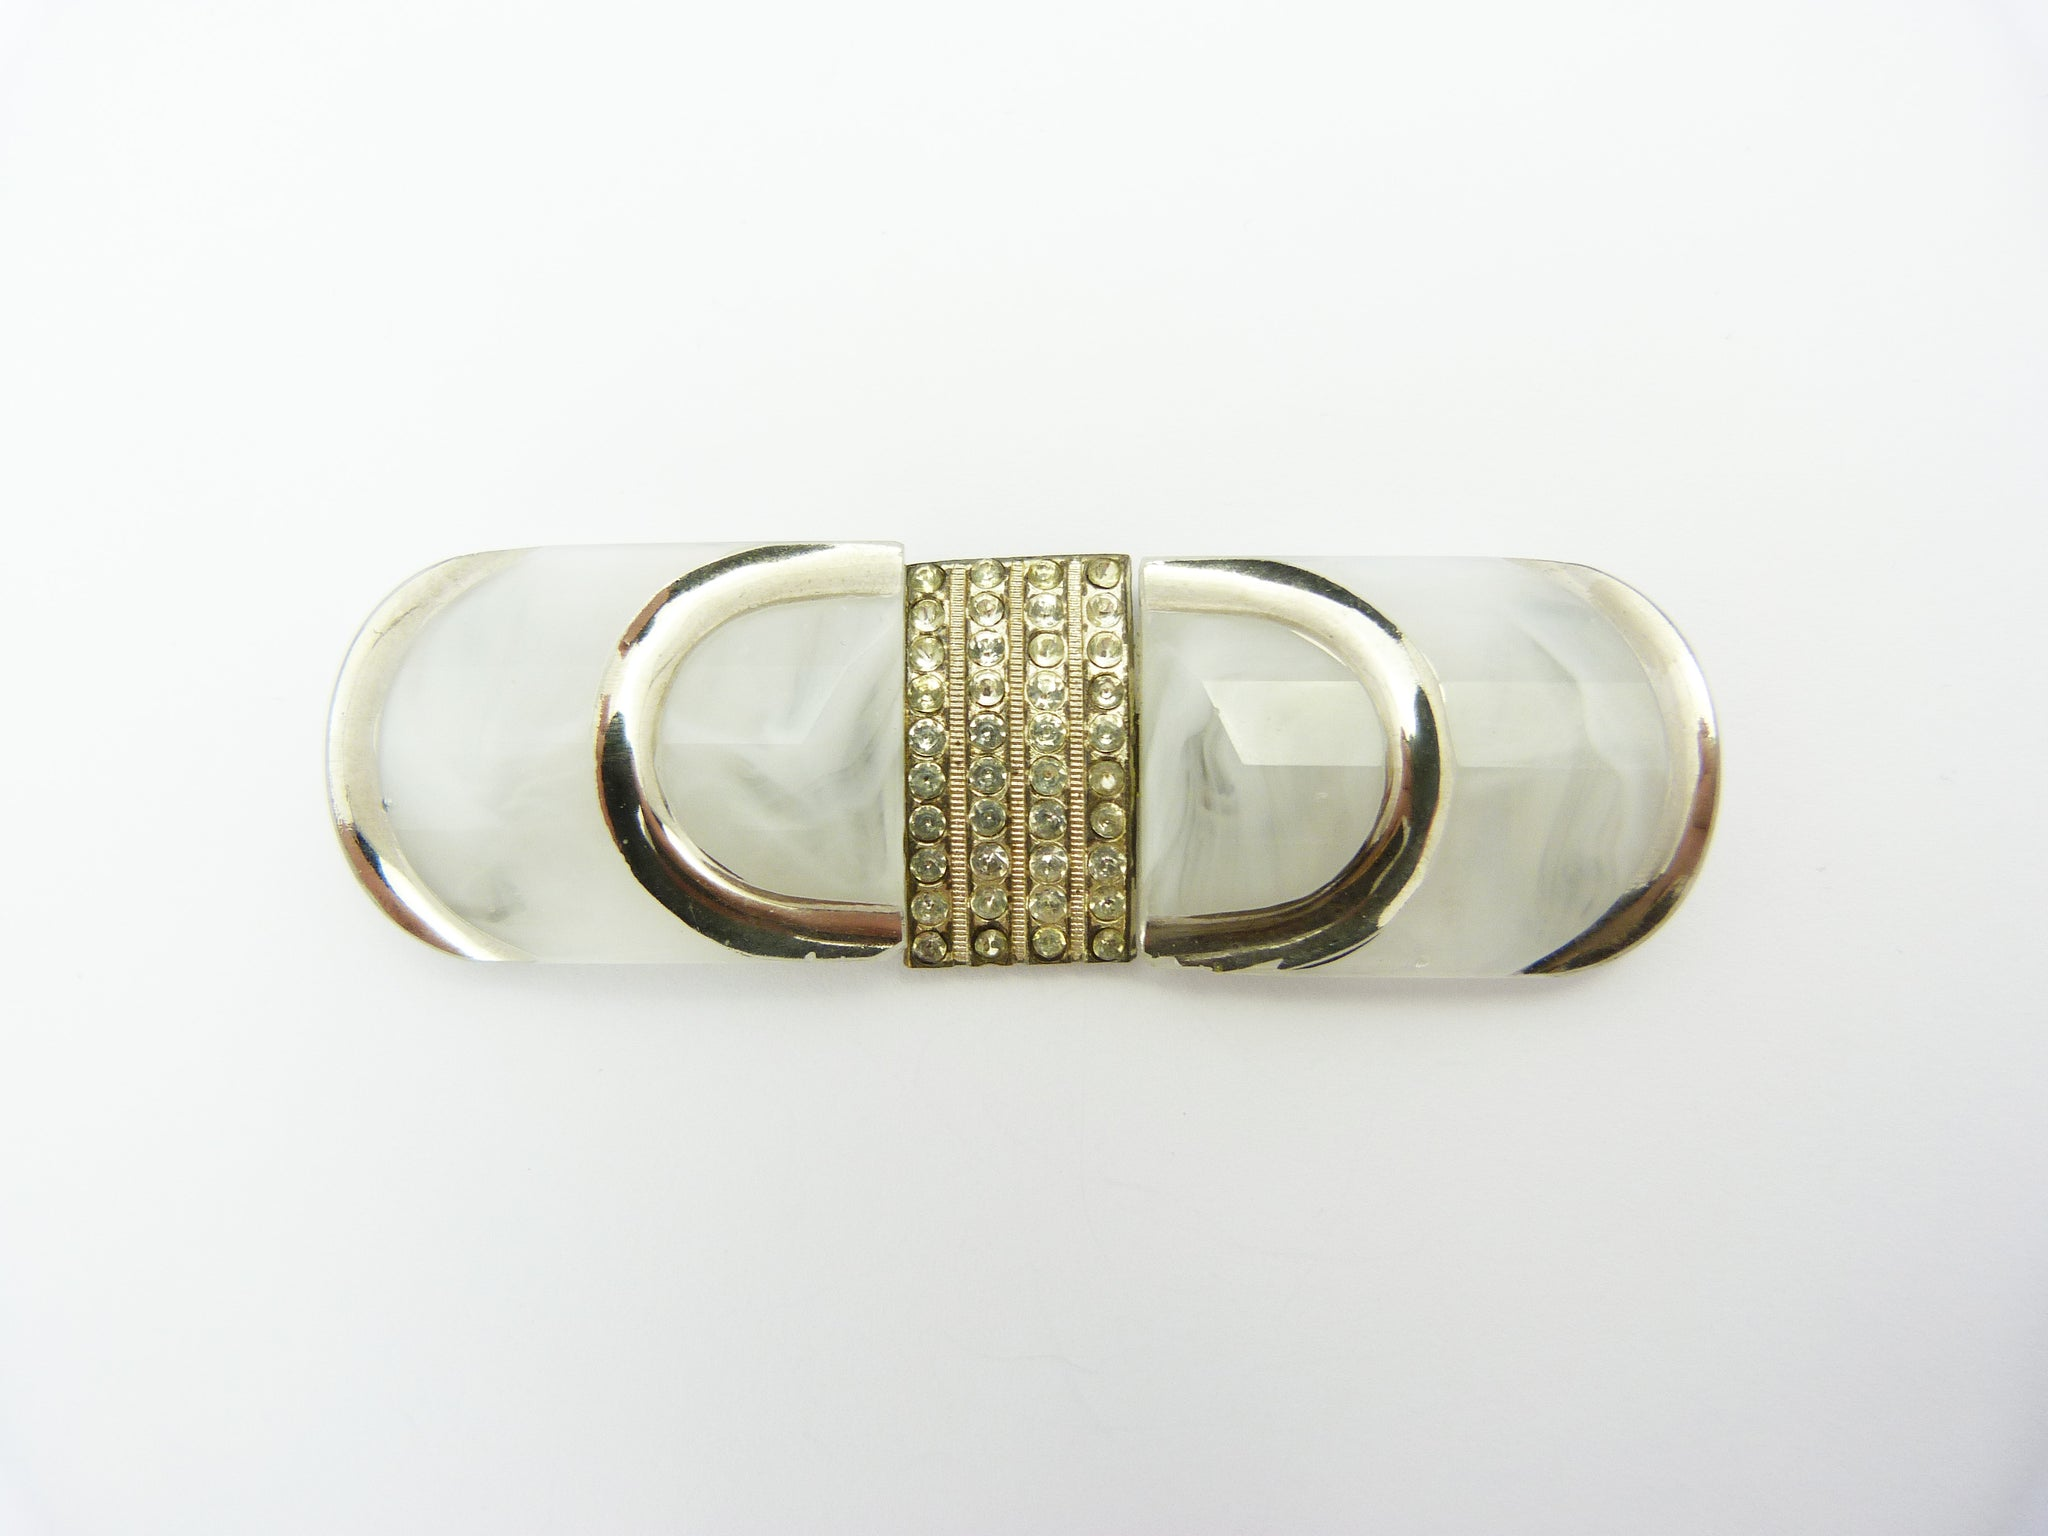 Vintage Art Deco Czechoslovakia Frosted White Glass & Paste Belt Buckle Clasp